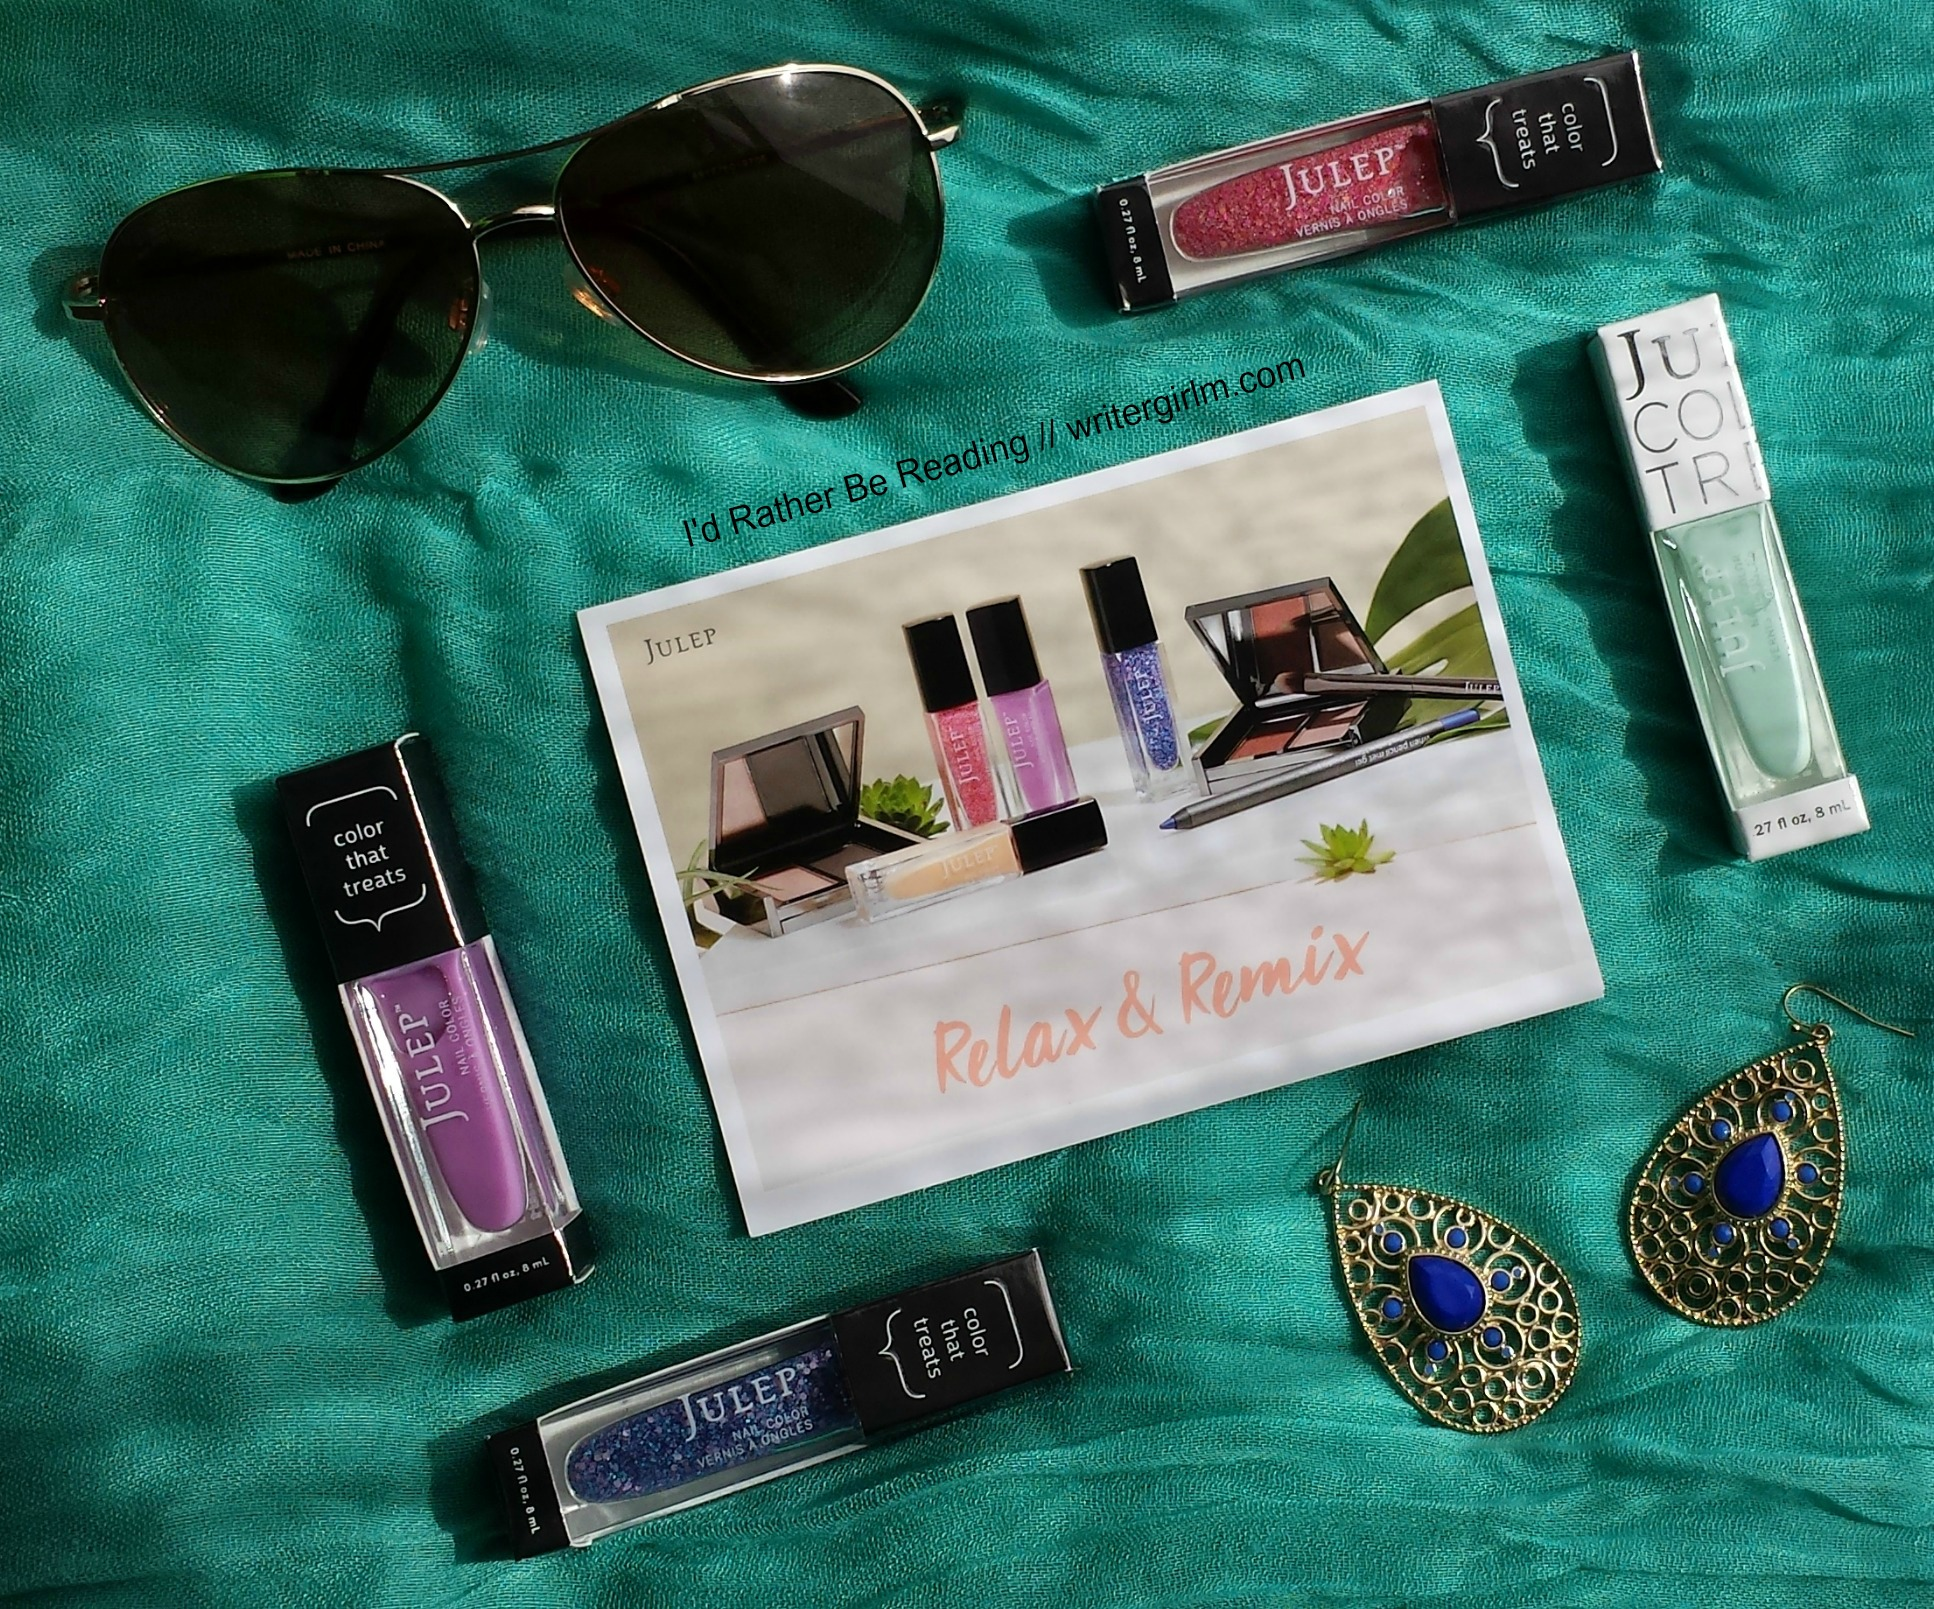 Check out my April 2017 Julep box and don't forget to enter my giveaway so you can snag some Julep polish of your own!